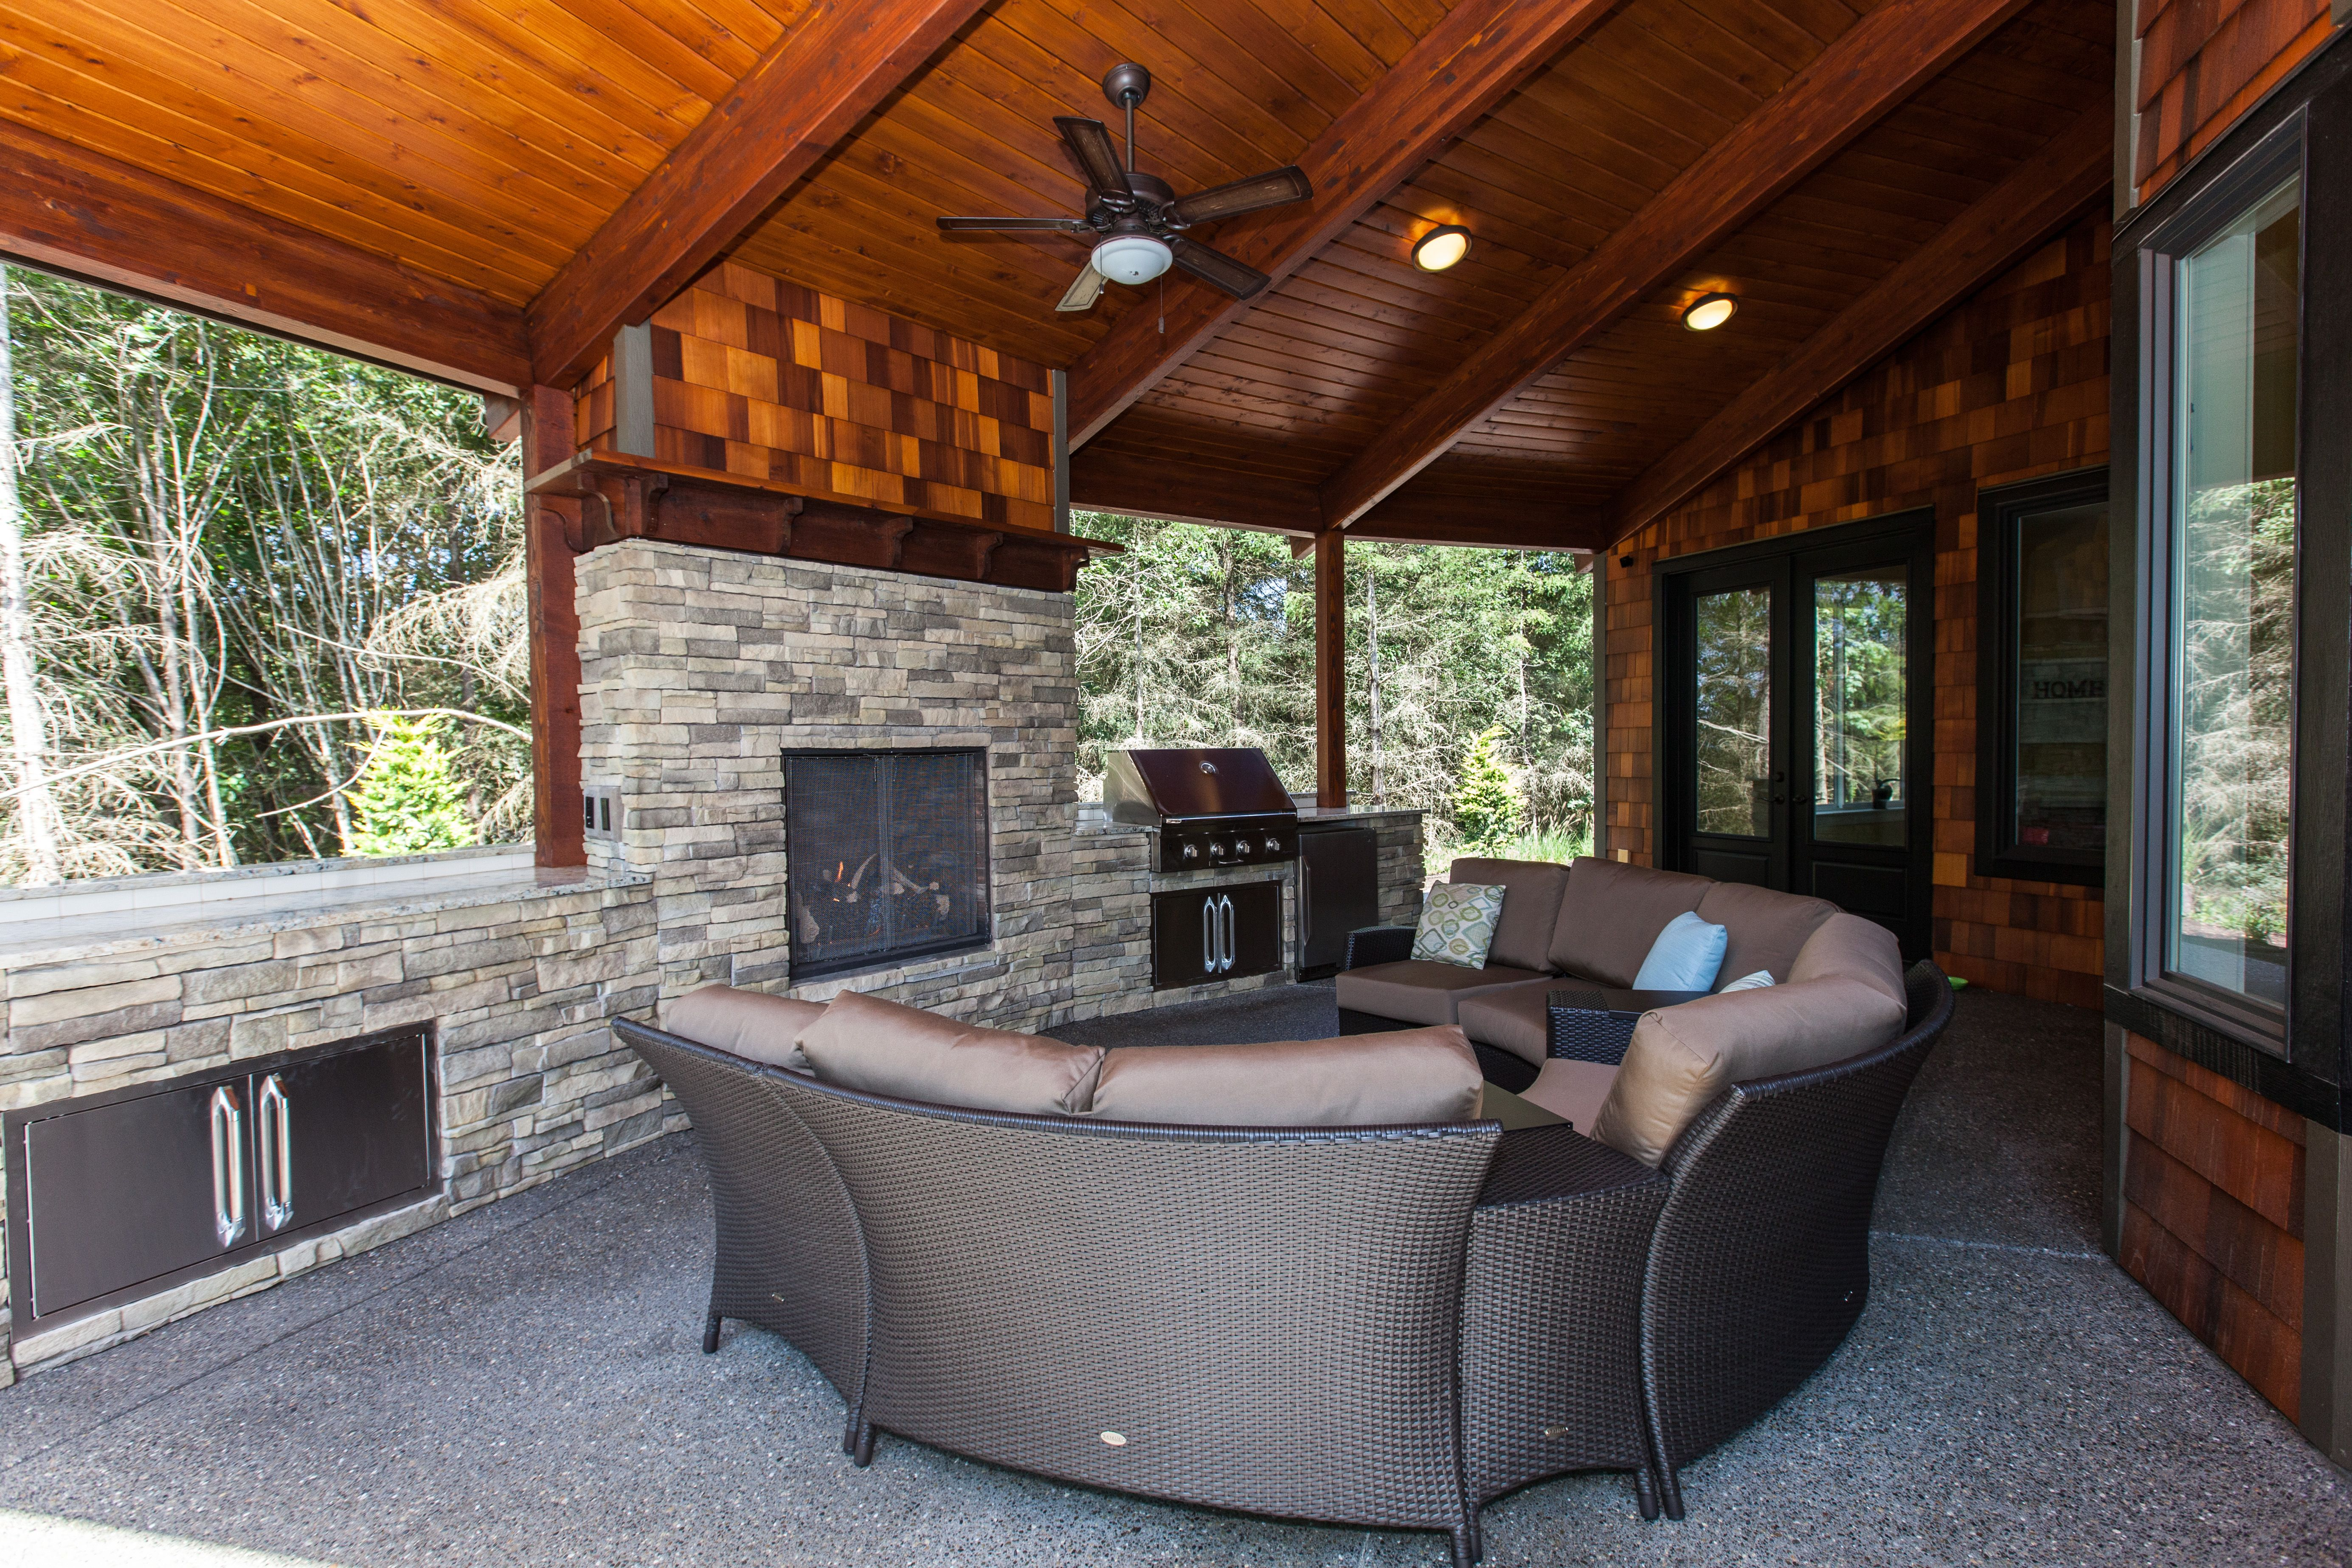 Covered outdoor living area with storage. | Outdoor living ... on Covered Outdoor Living Area id=41900